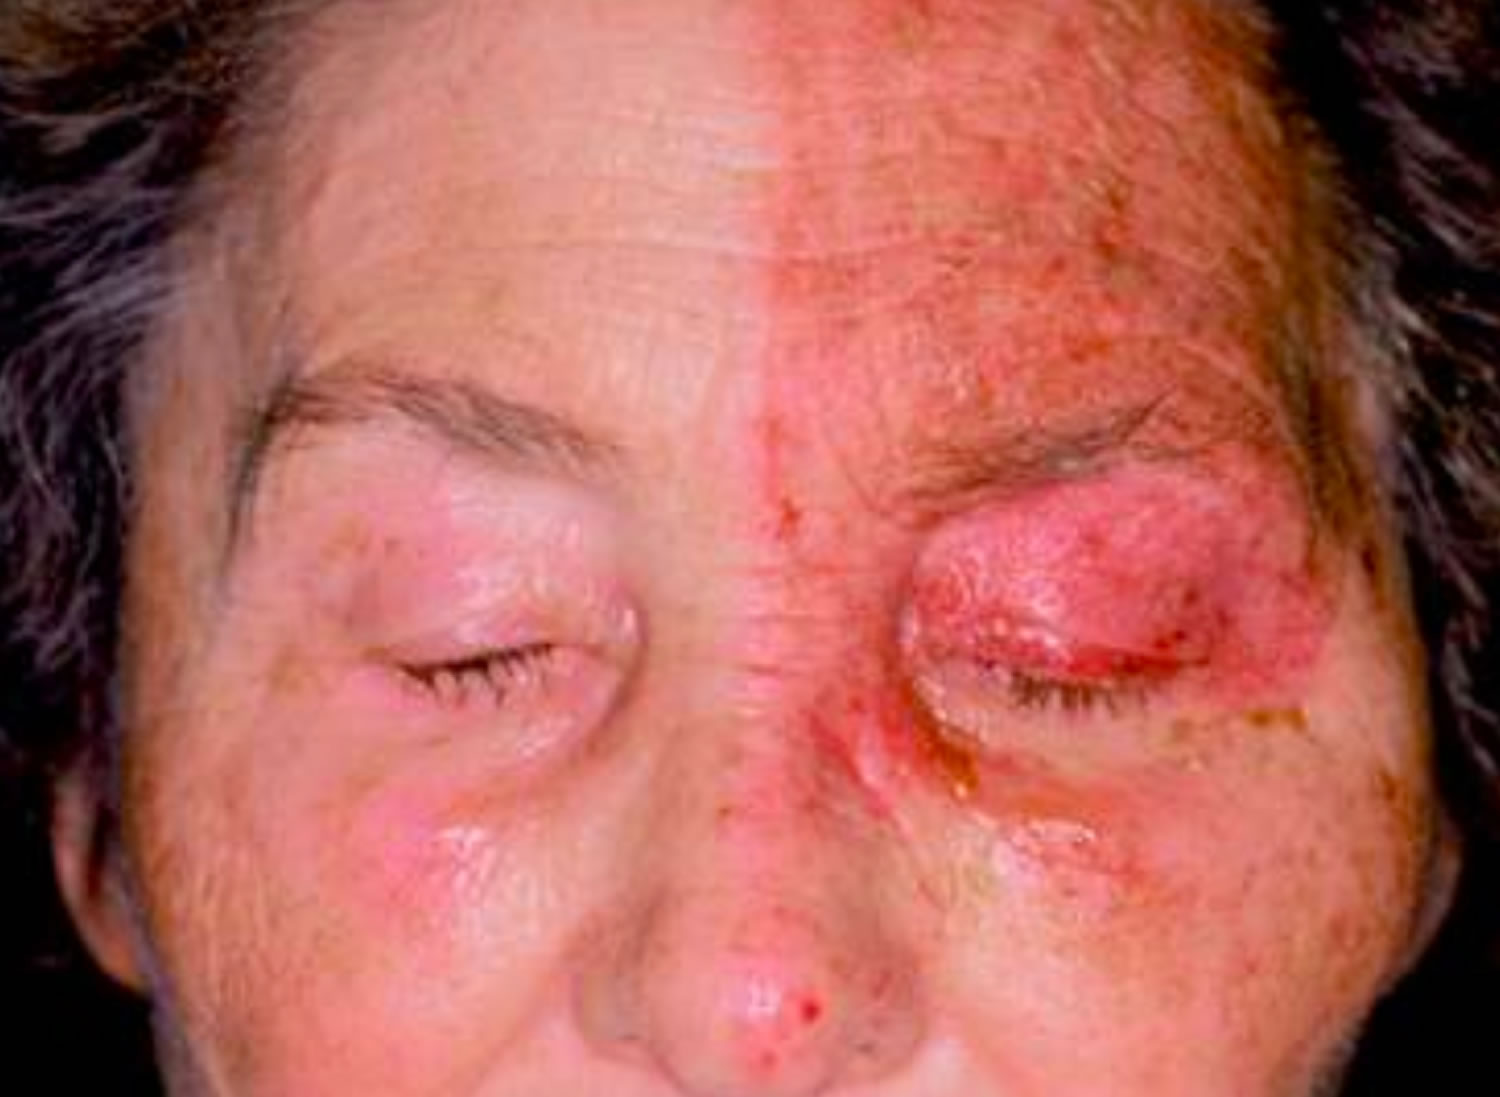 Shingles in the eye